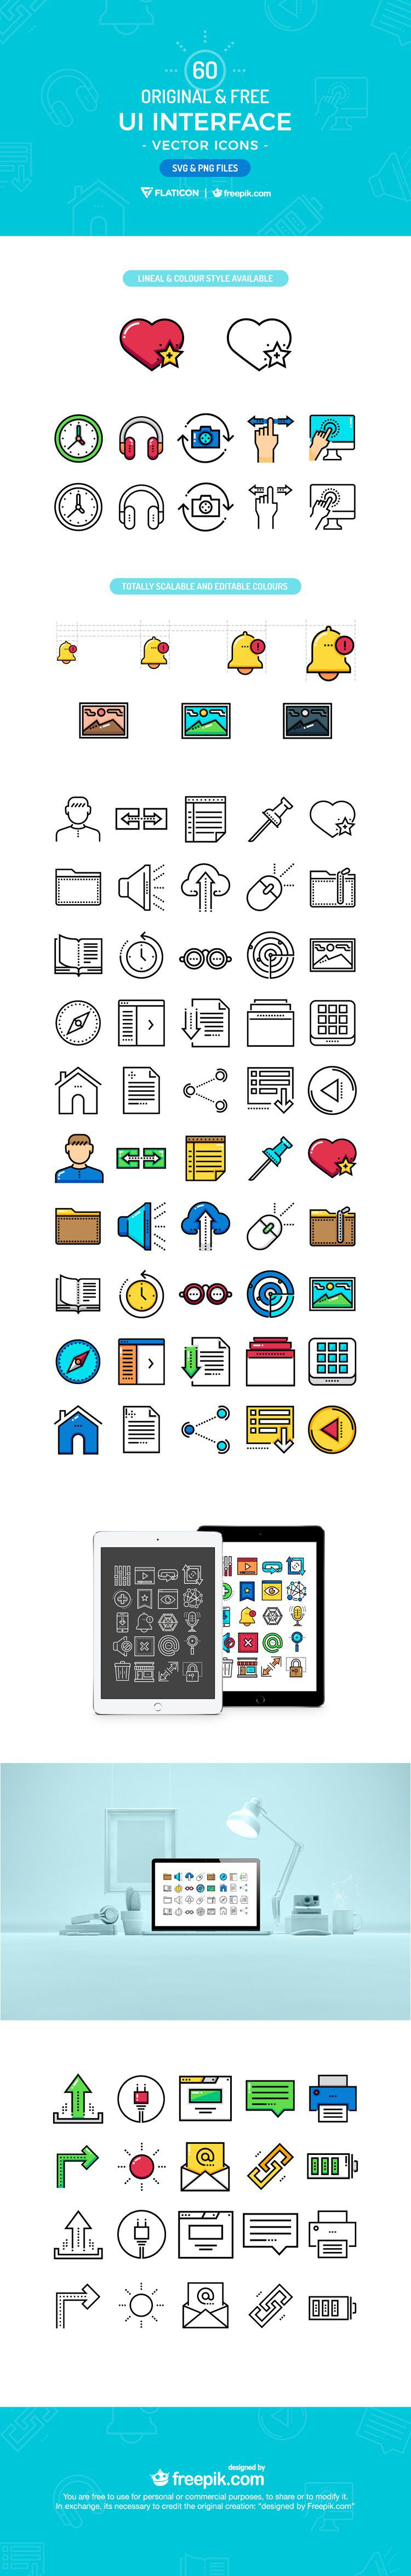 ui interface icon set screenshot svg